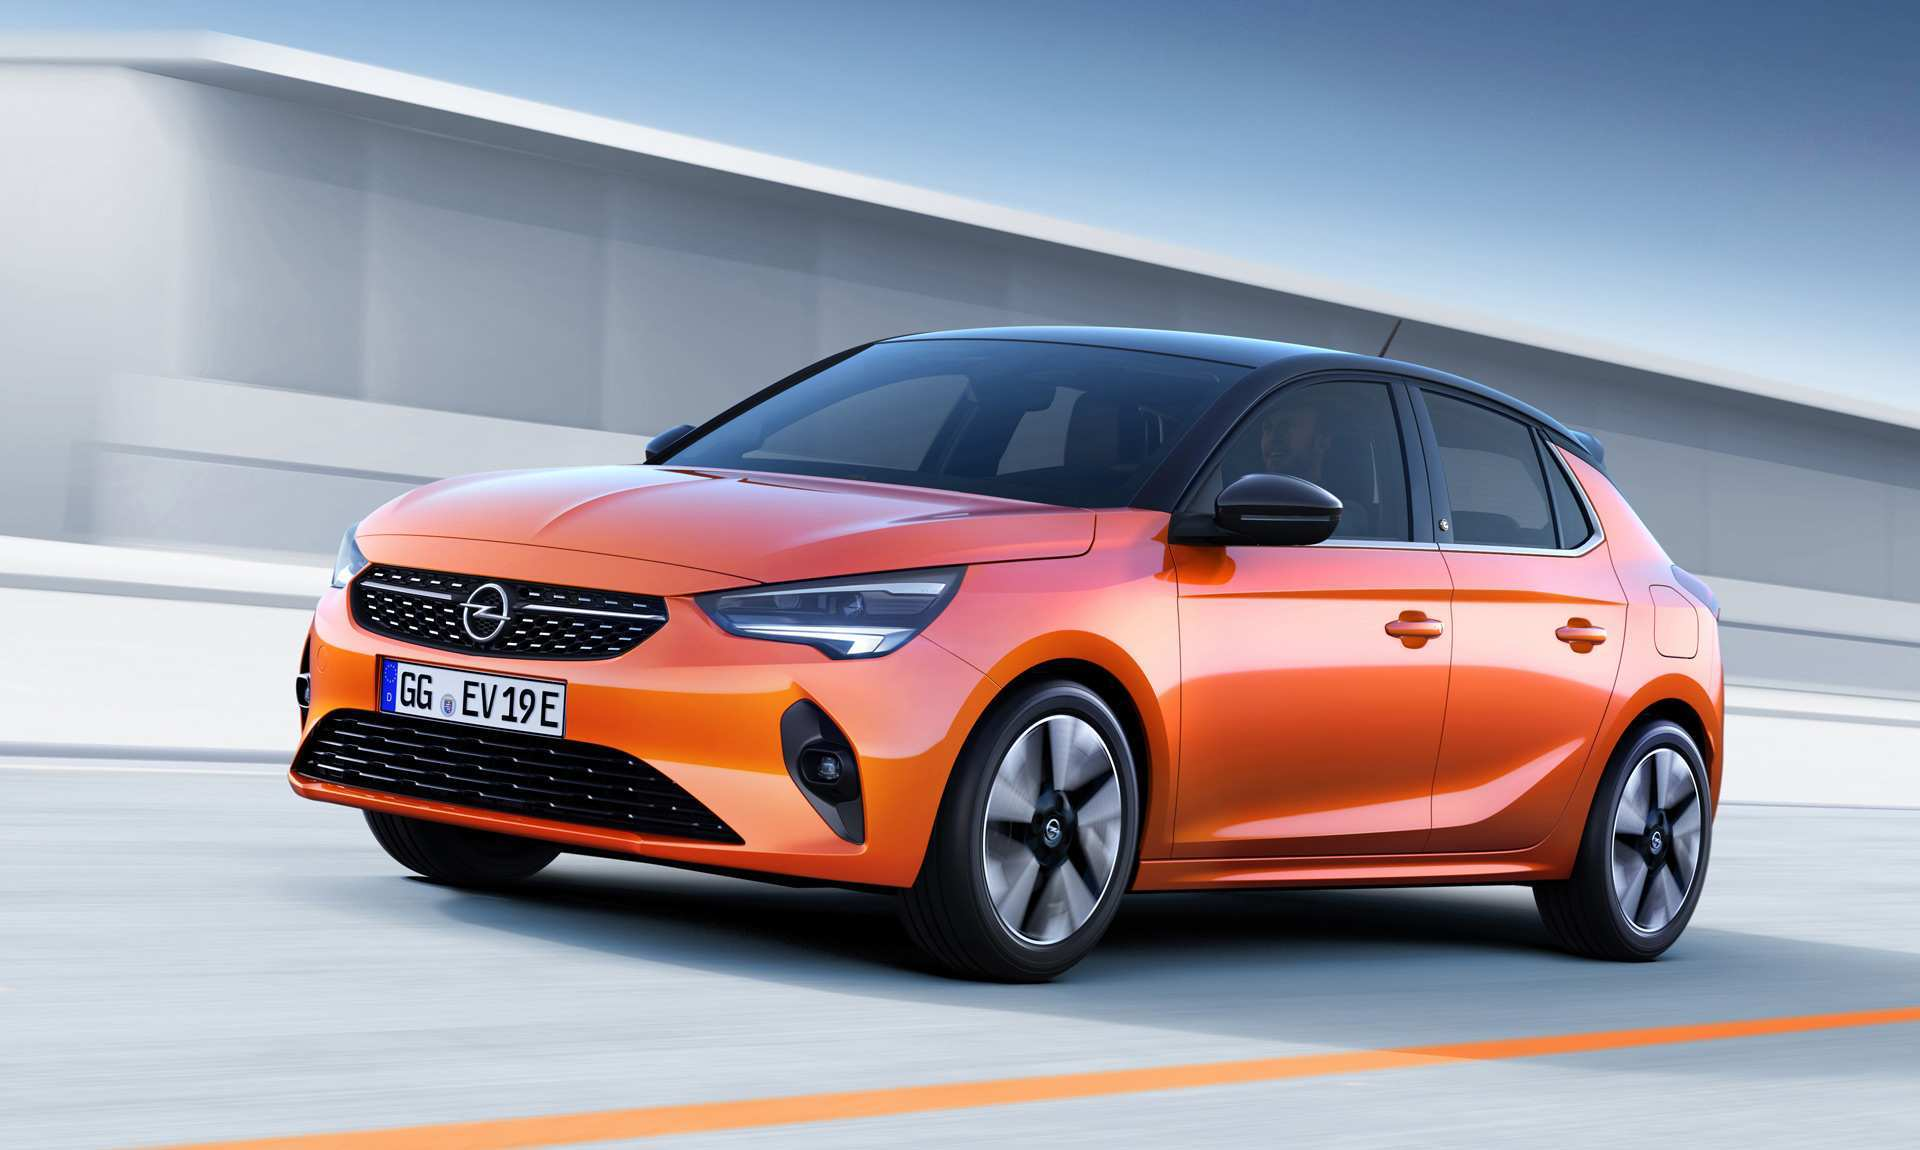 74 All New Opel Cars 2020 Research New